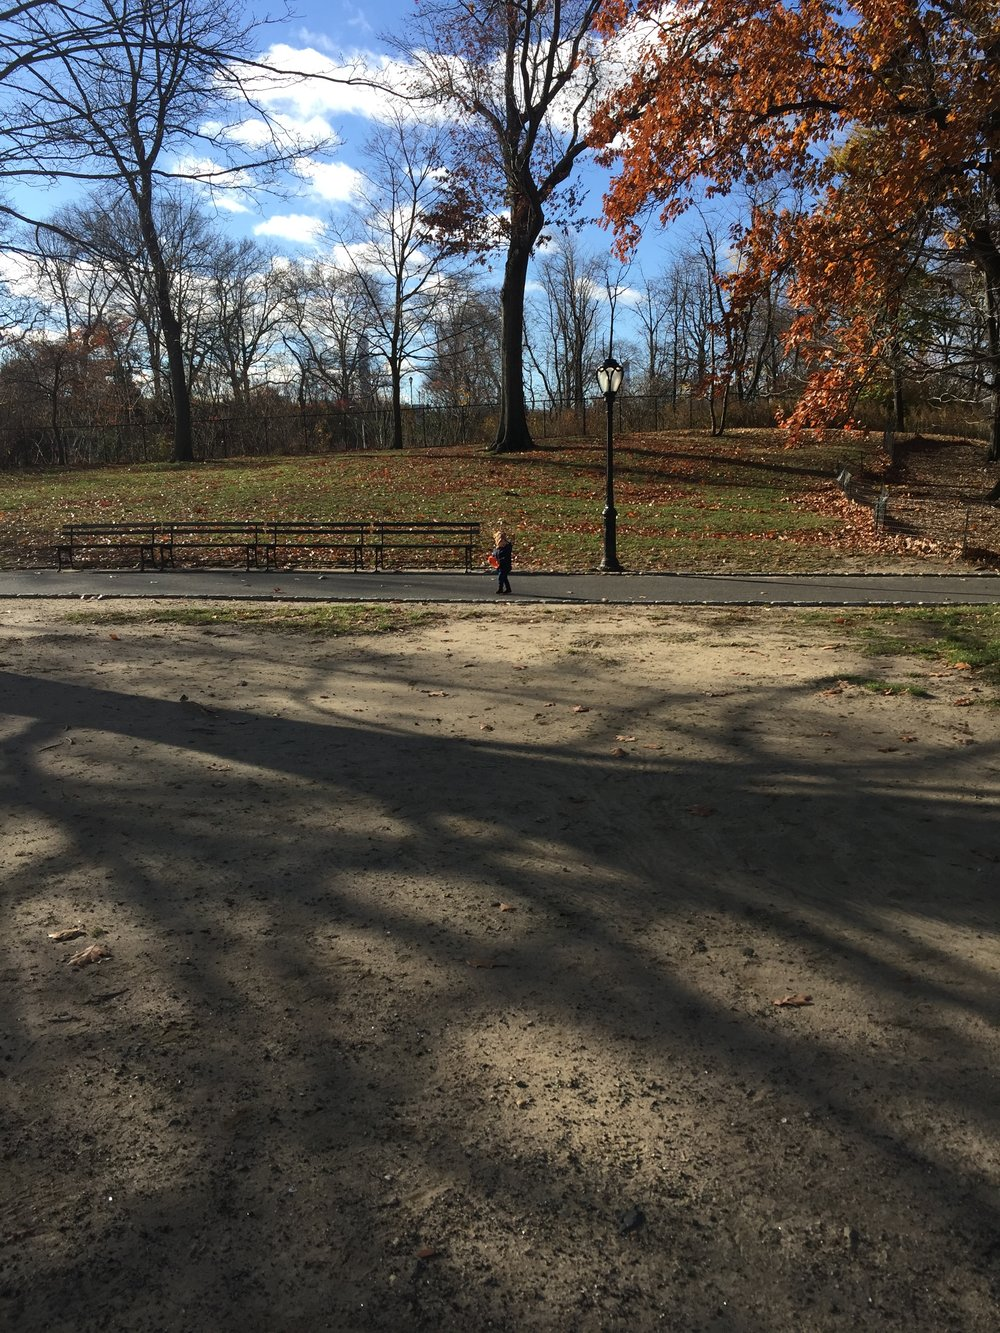 Little girl in the best park in the best city.